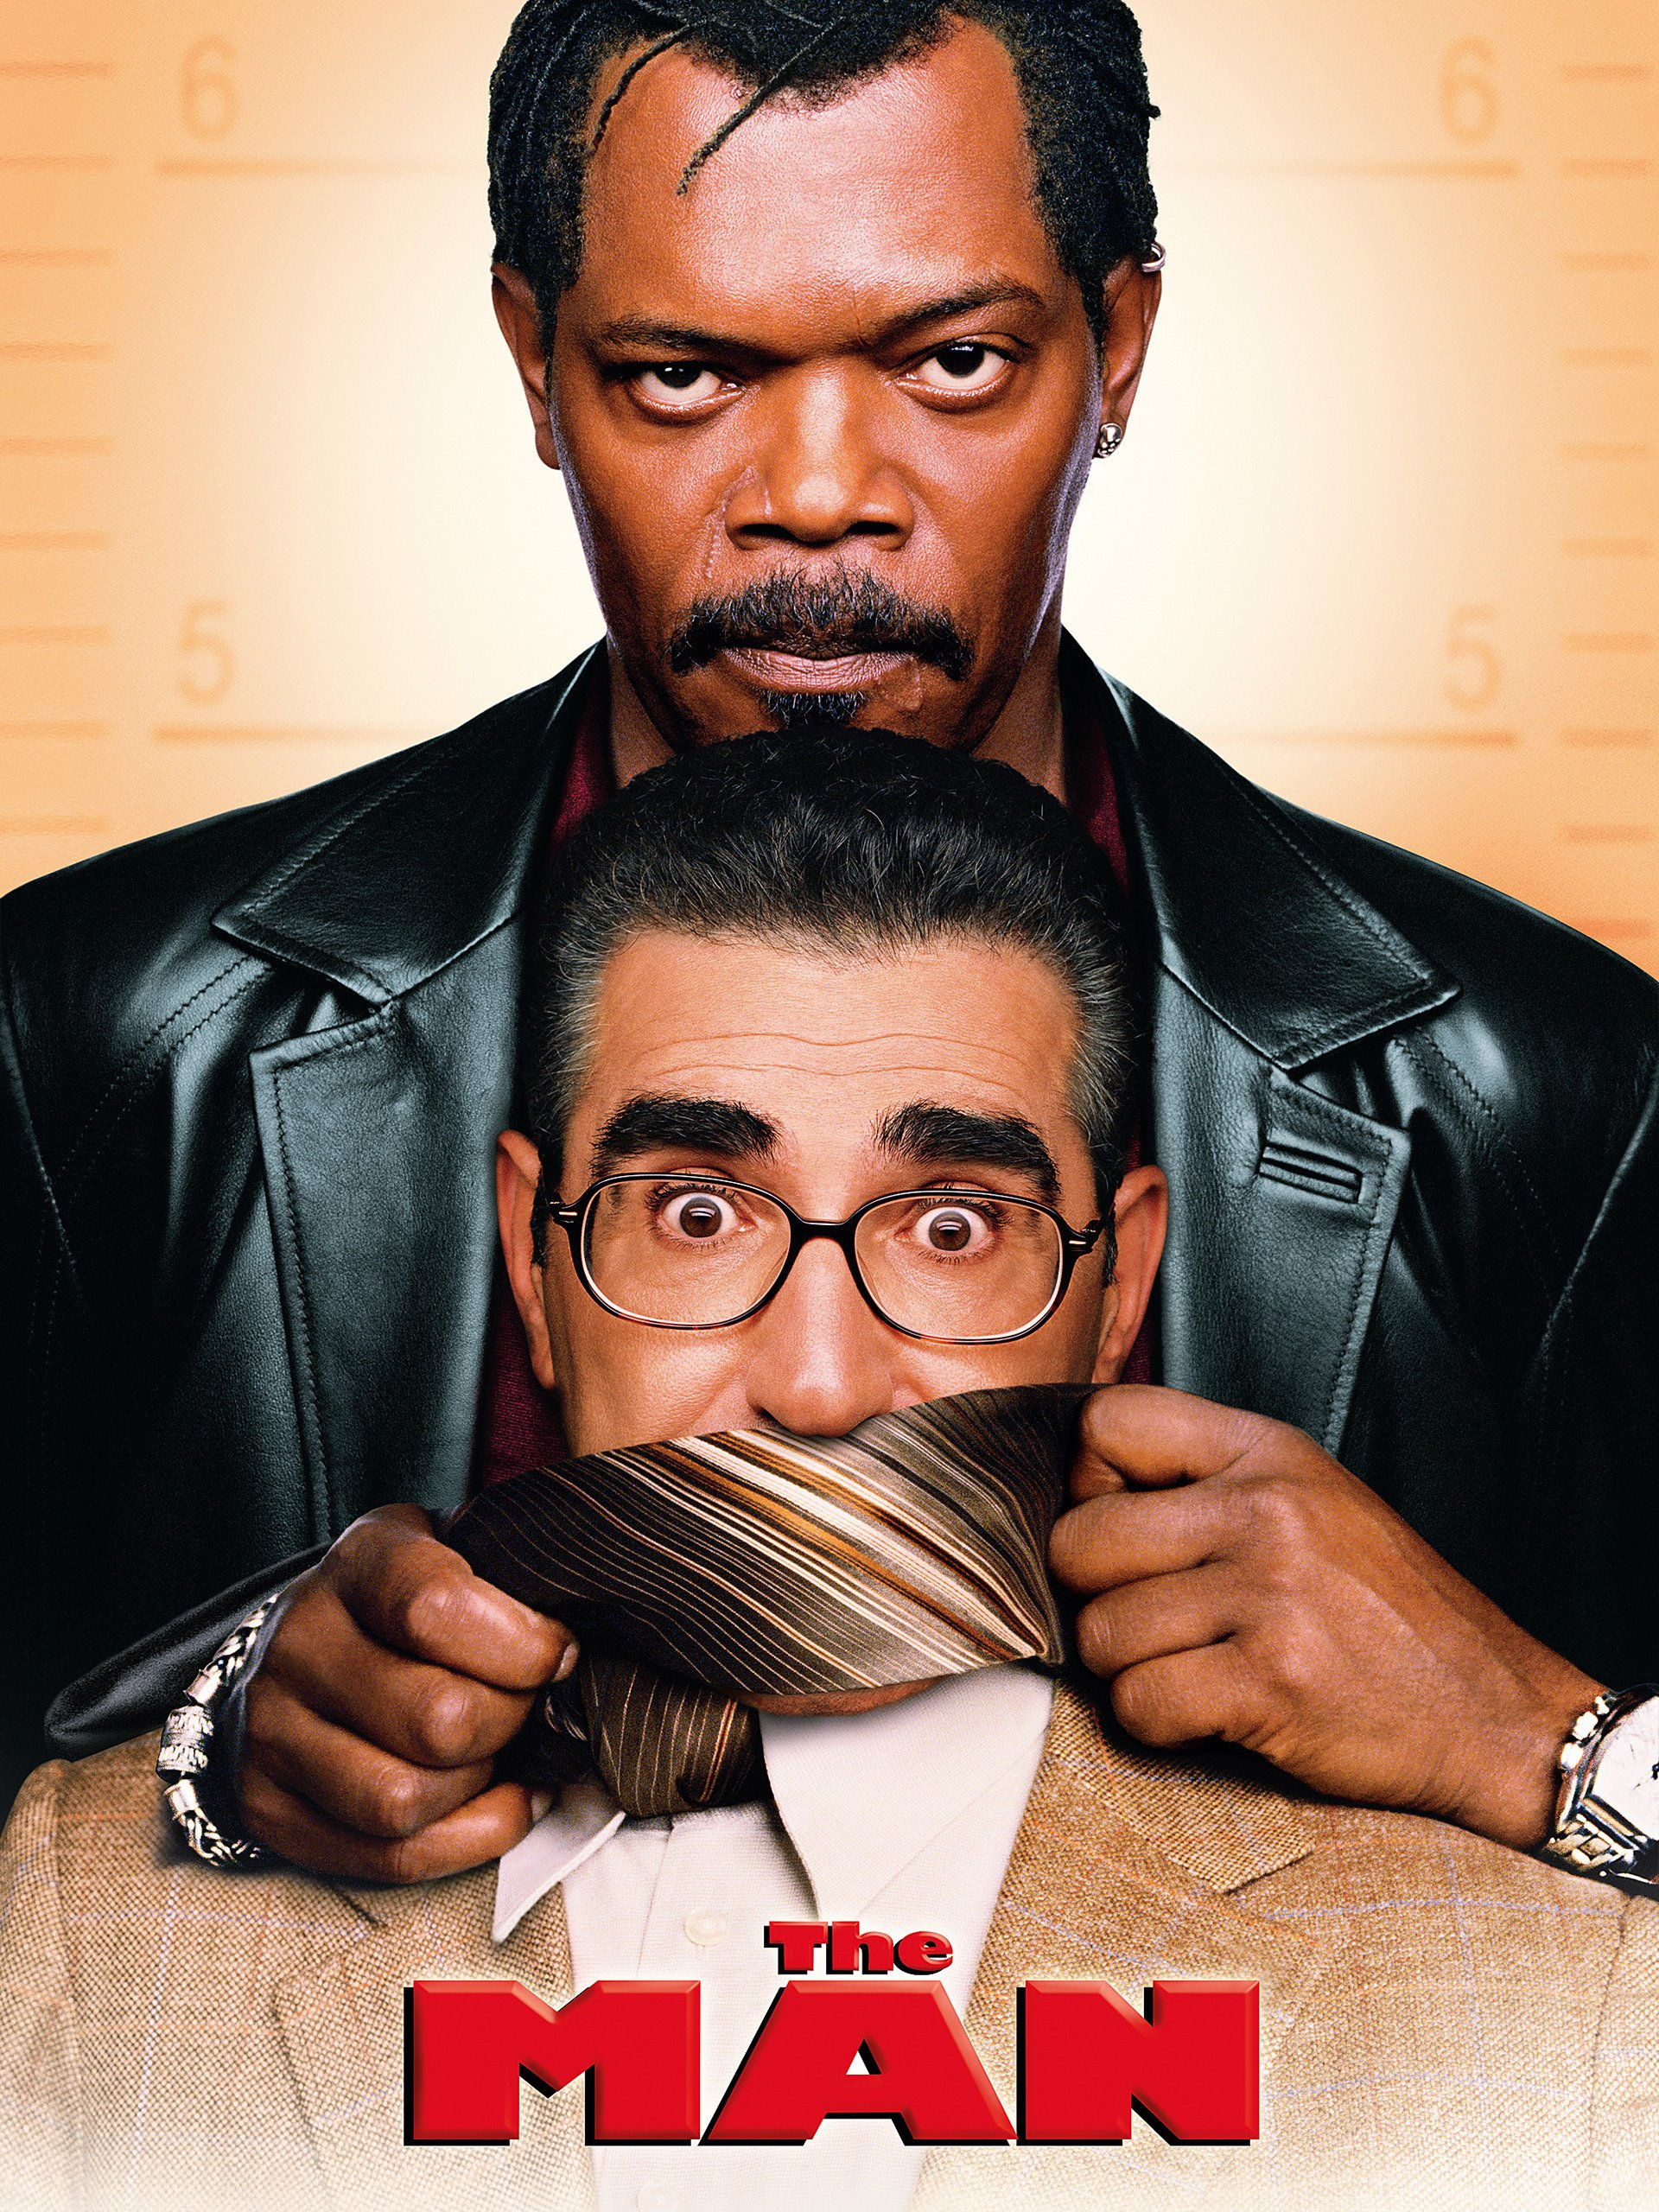 Moviery.com - Download the Movie Loaded Weapon 1 Online in